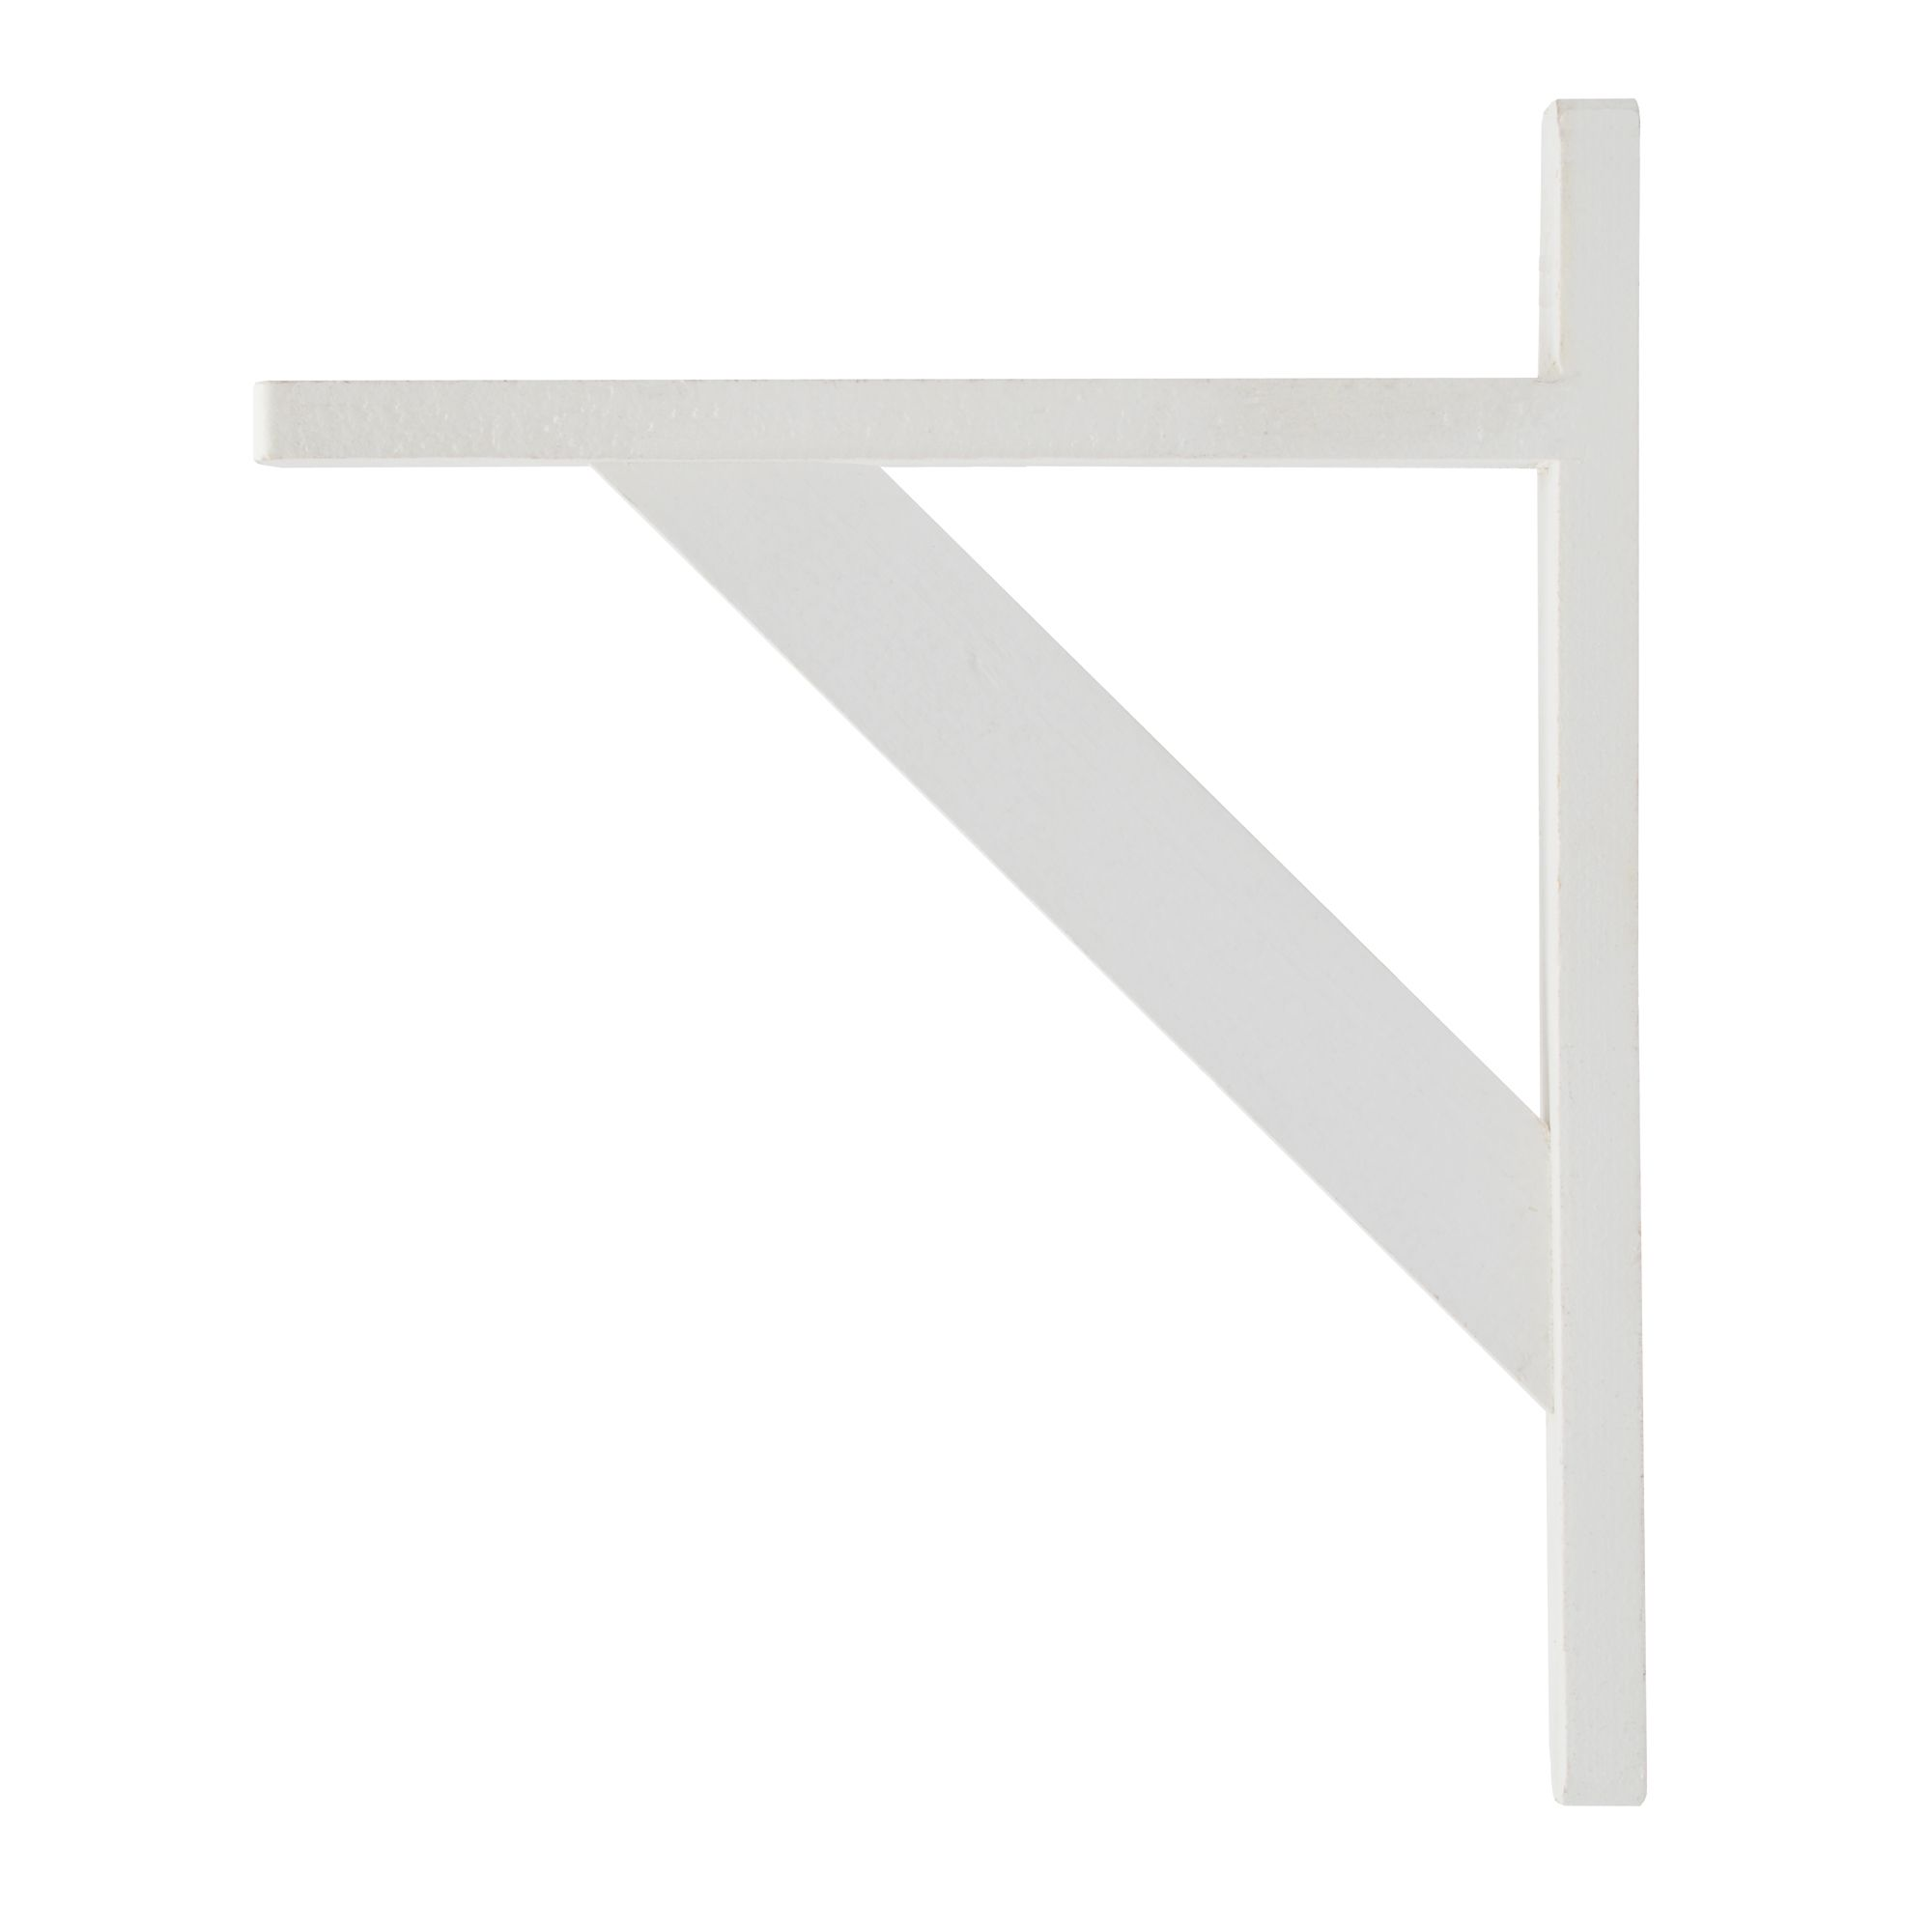 B Amp Q Brackets White Matt Wood Shelf Bracket D 250mm